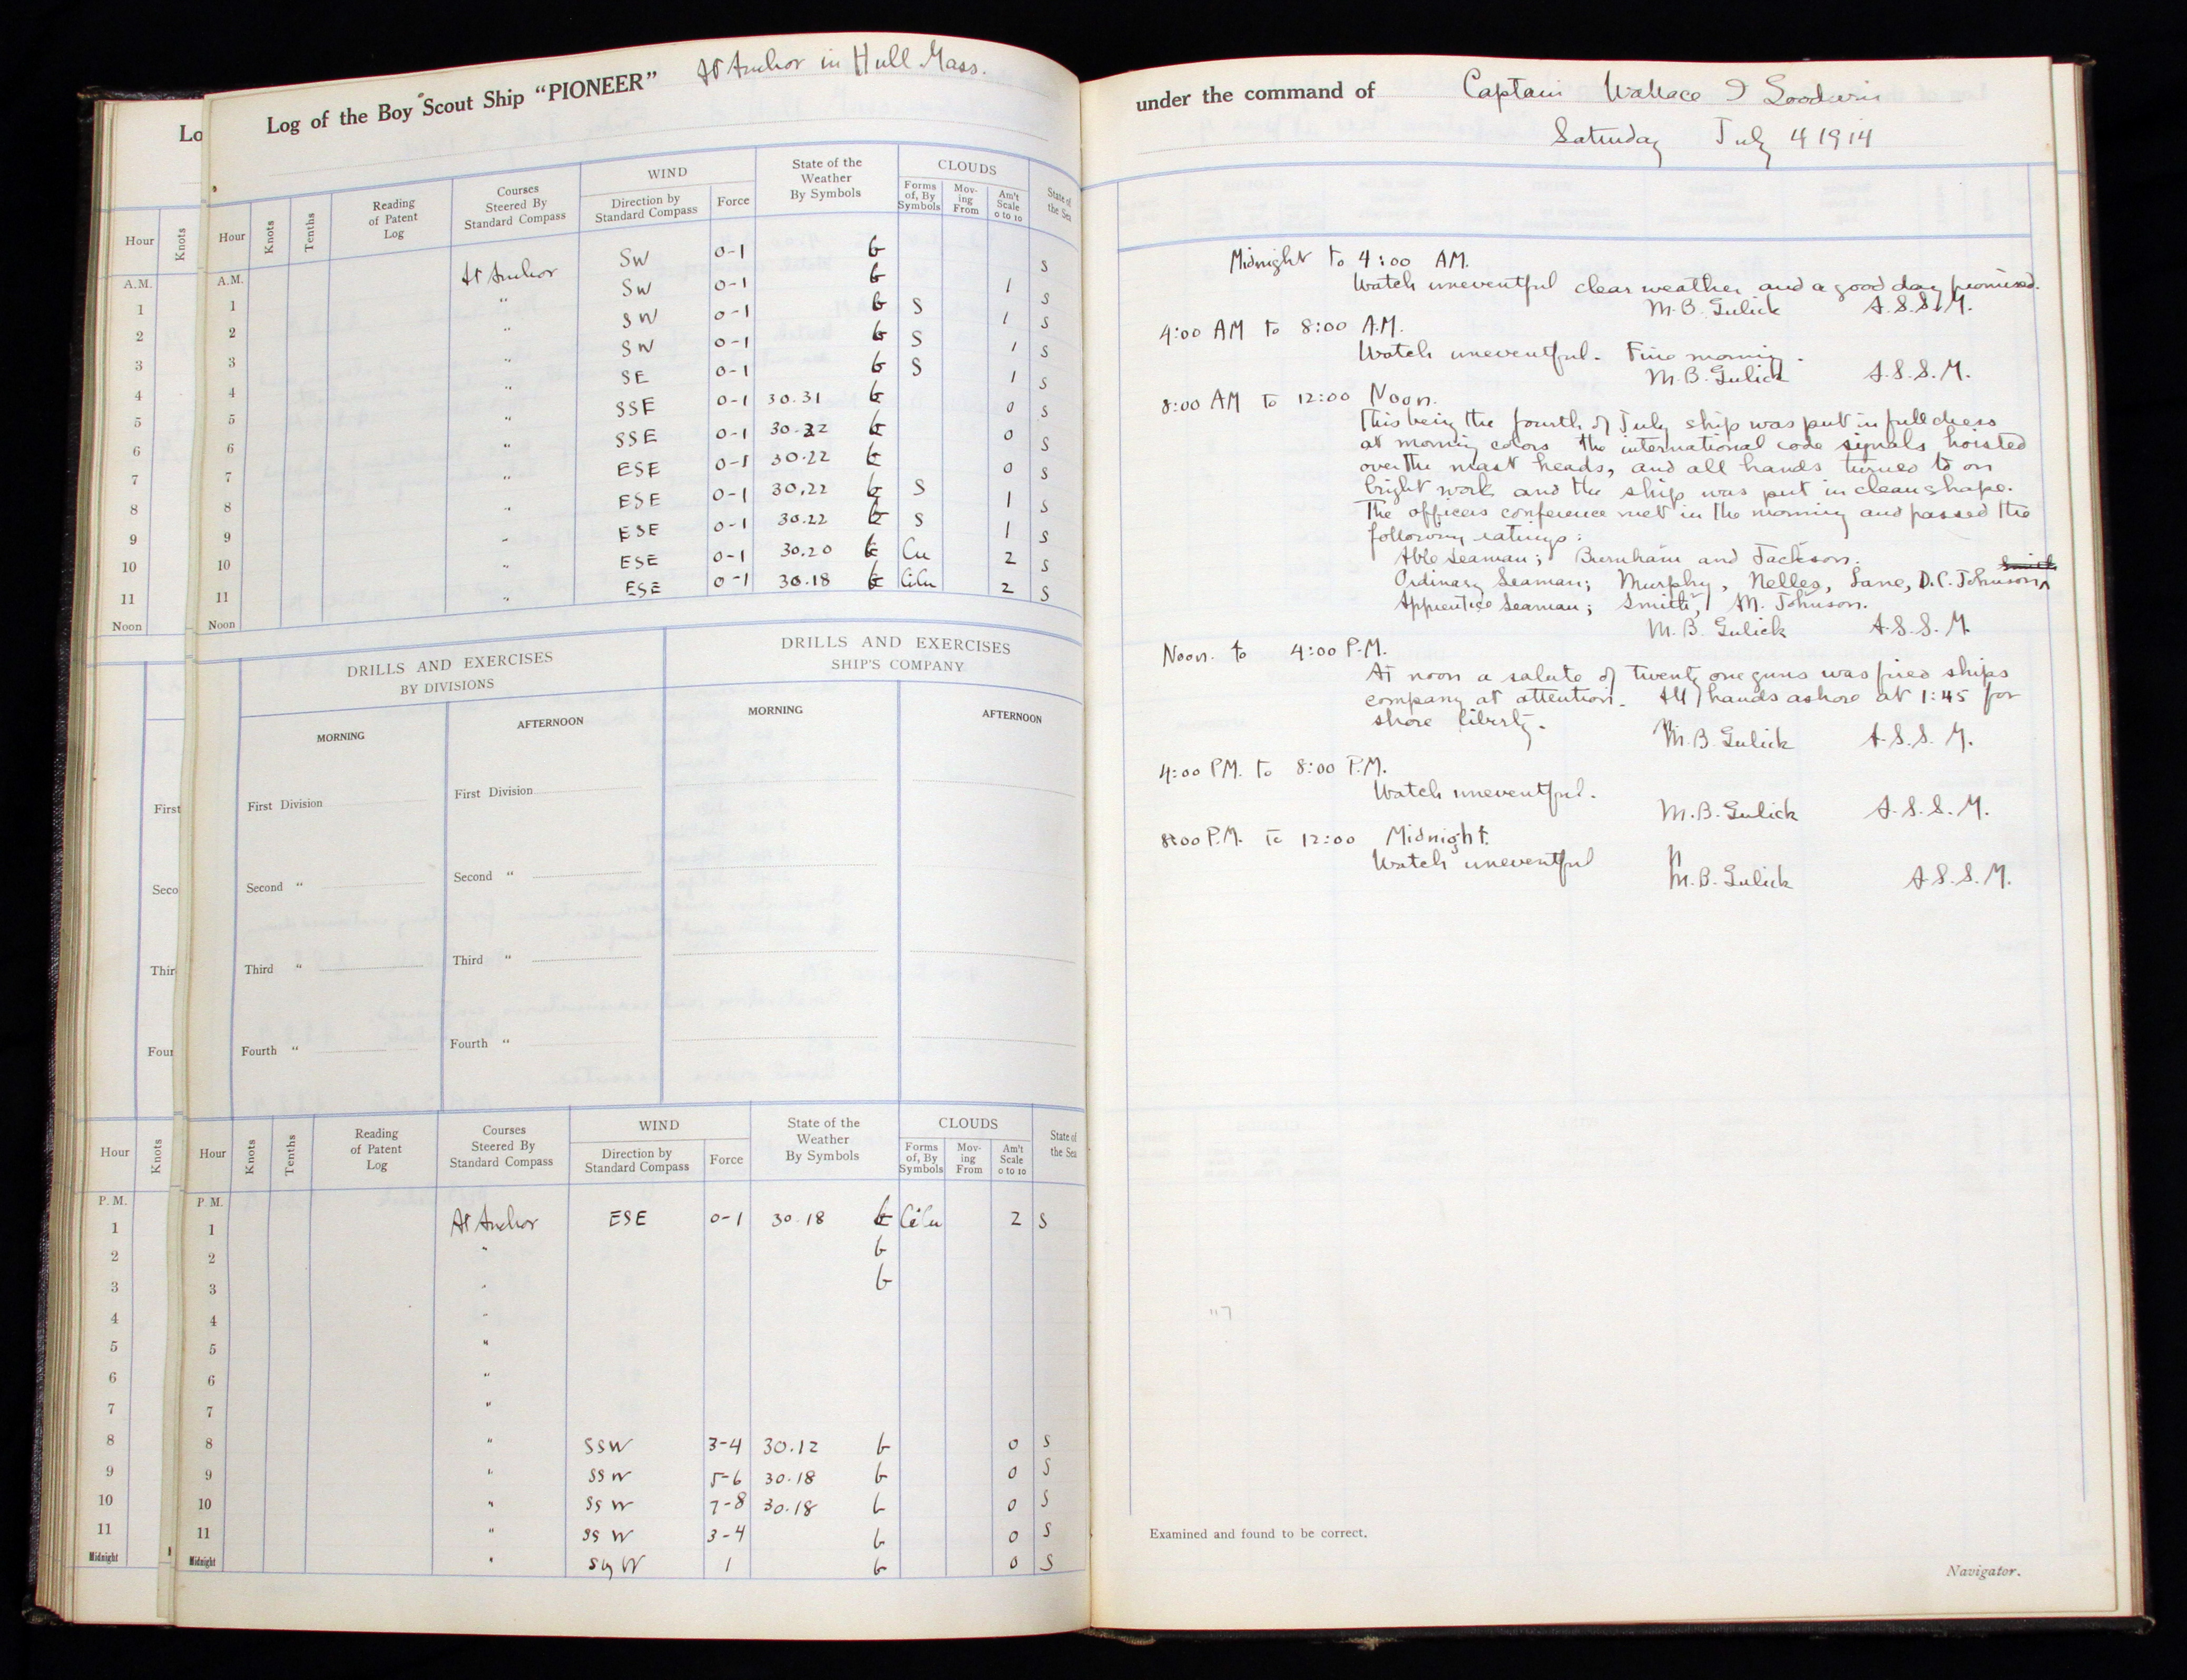 Scout Log Book